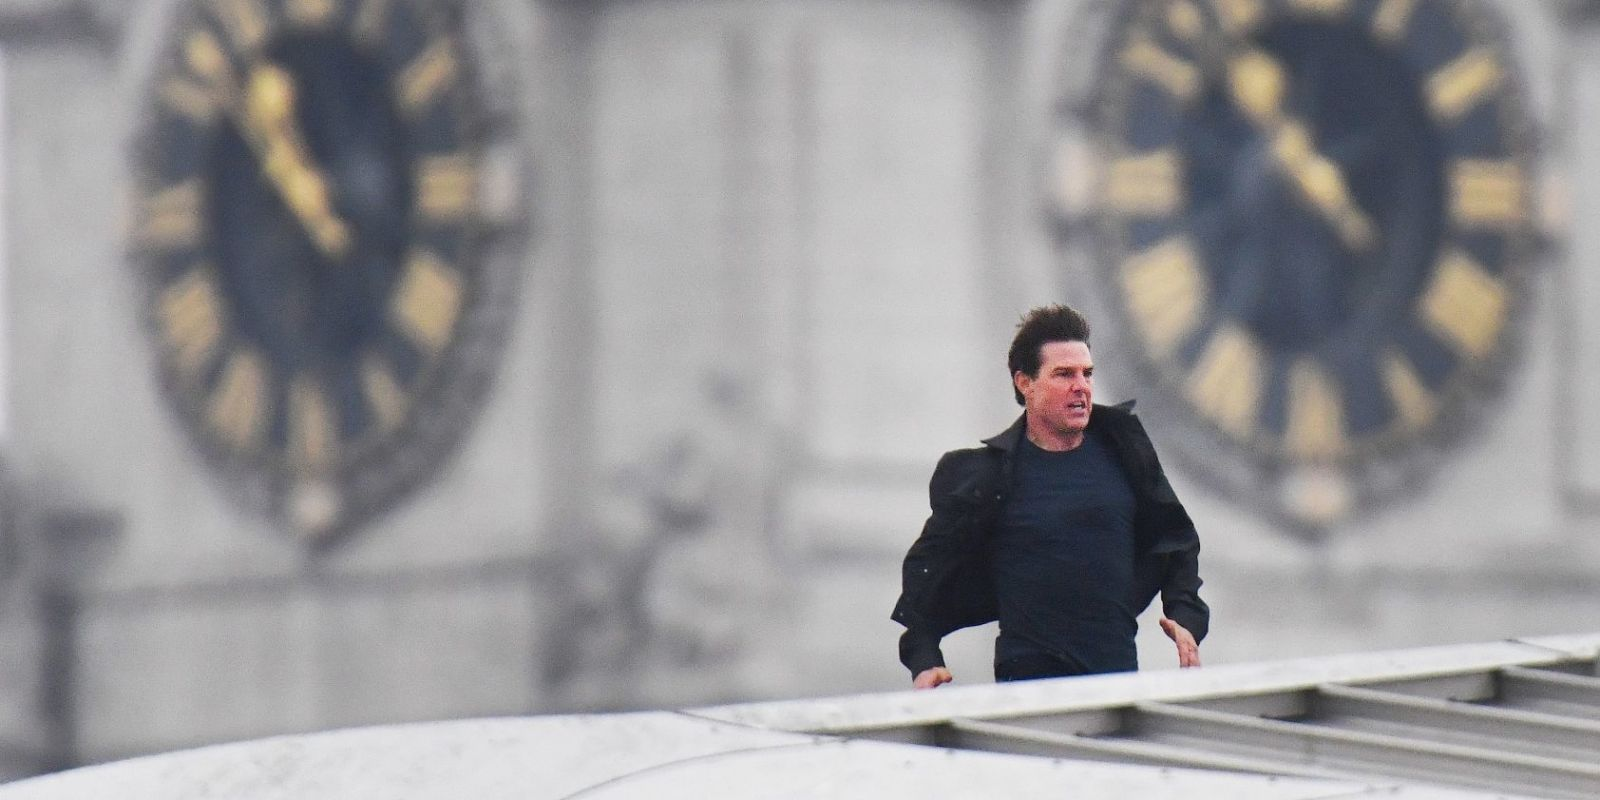 Tom Cruise films Mission: Impossible stunts in London after recovering from previous injury